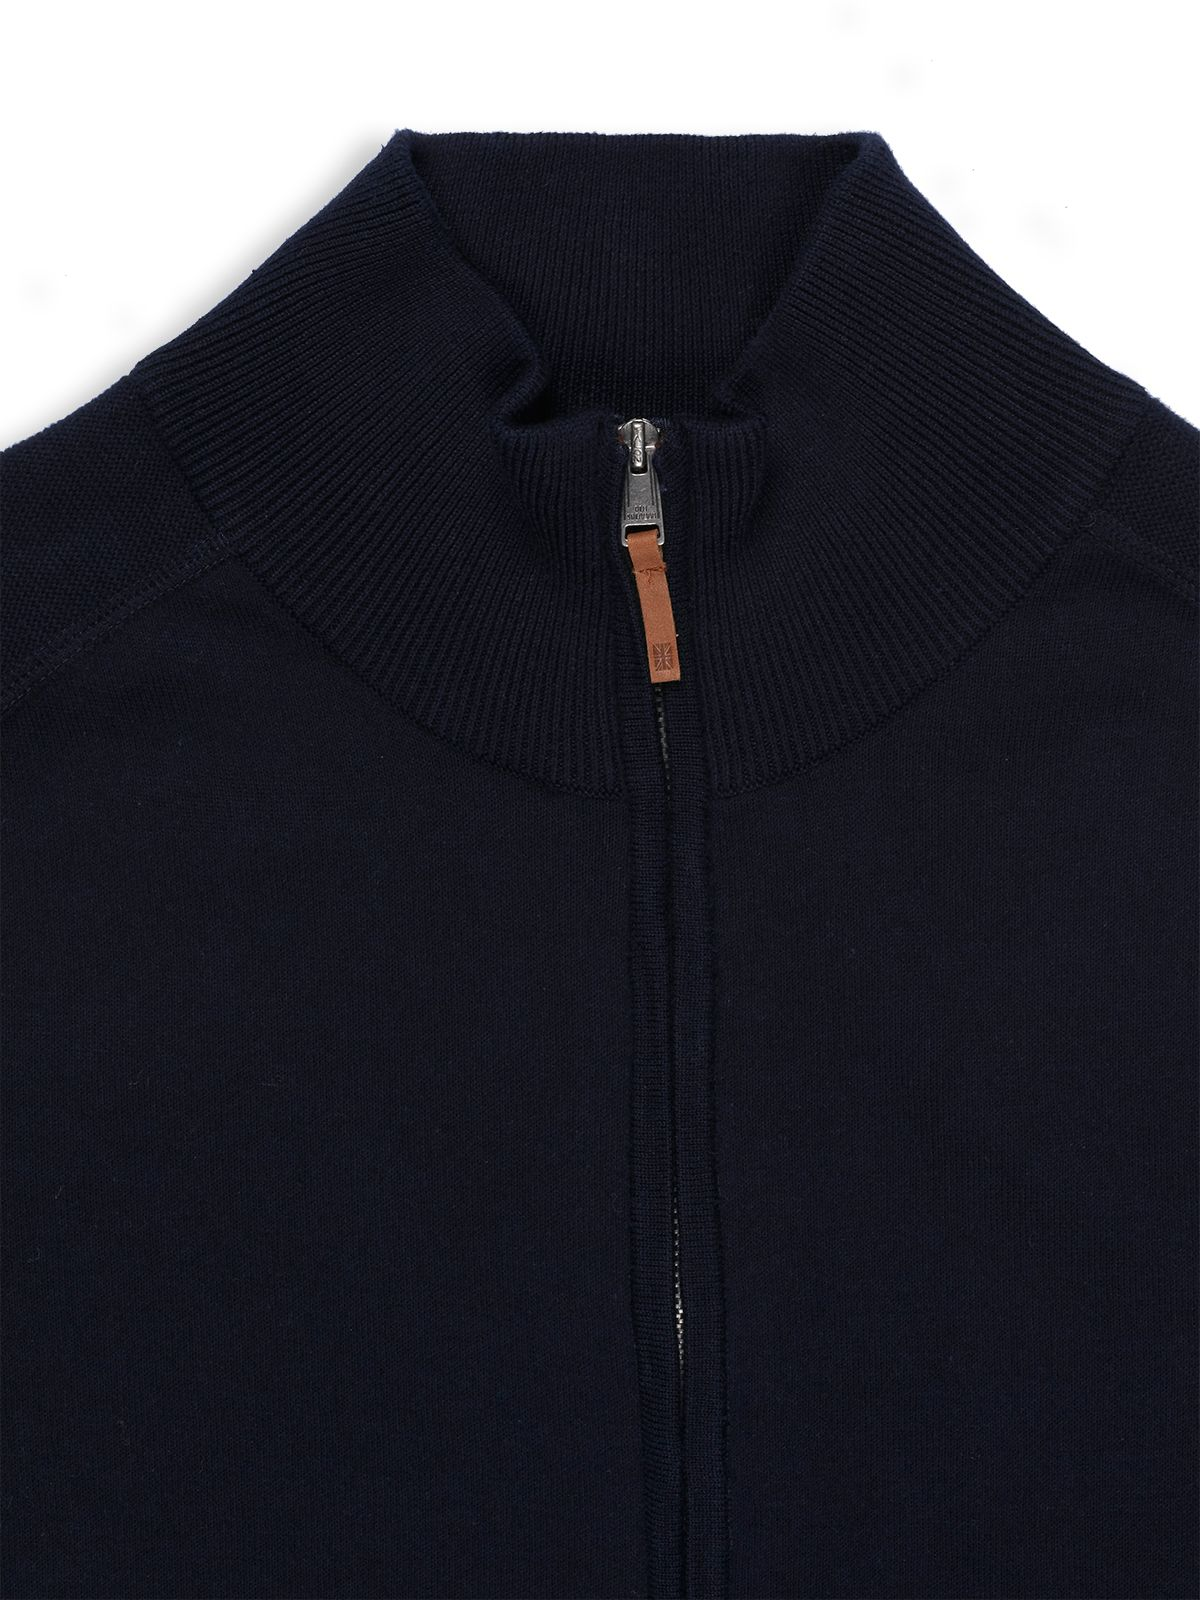 Ben sherman Funnel Neck Zip Through Cardigan in Blue for Men | Lyst